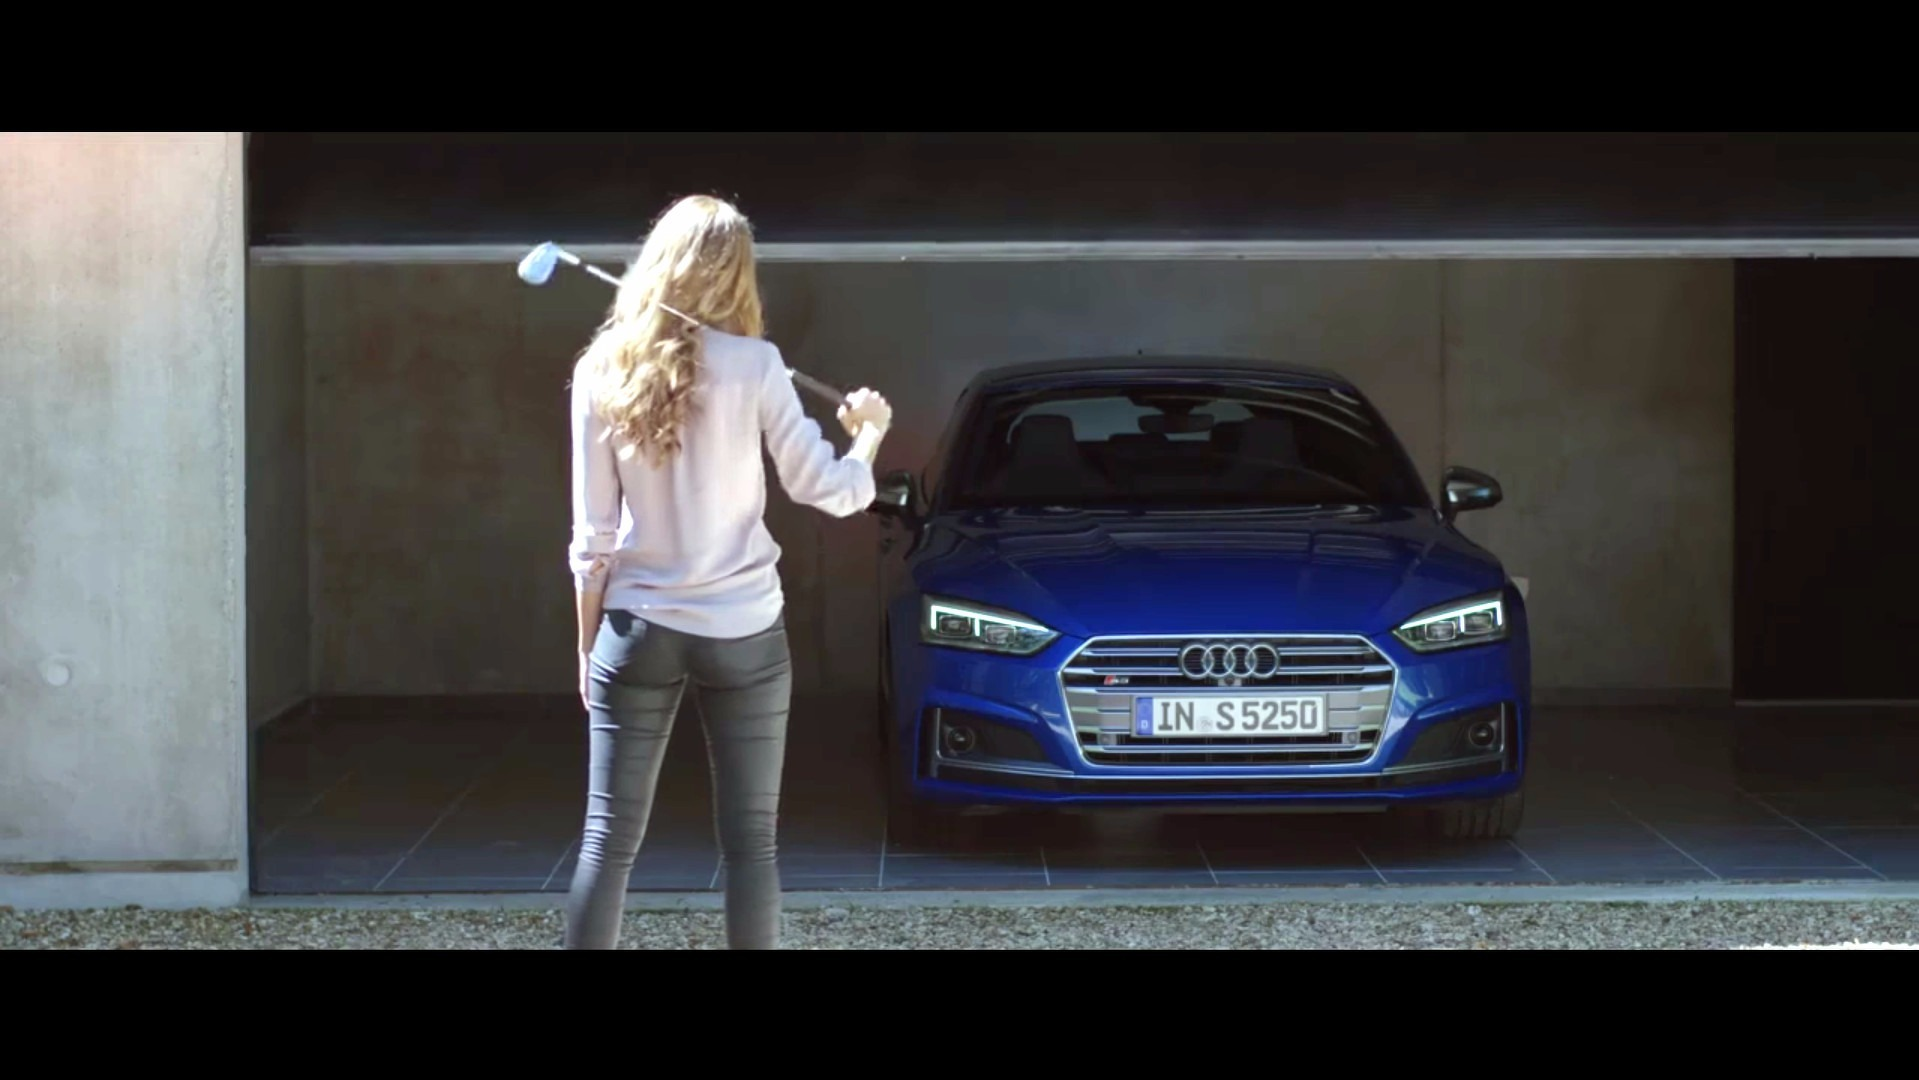 Audi S Escapes Scorned Womans Fury In Latest Commercial - Audi commercial